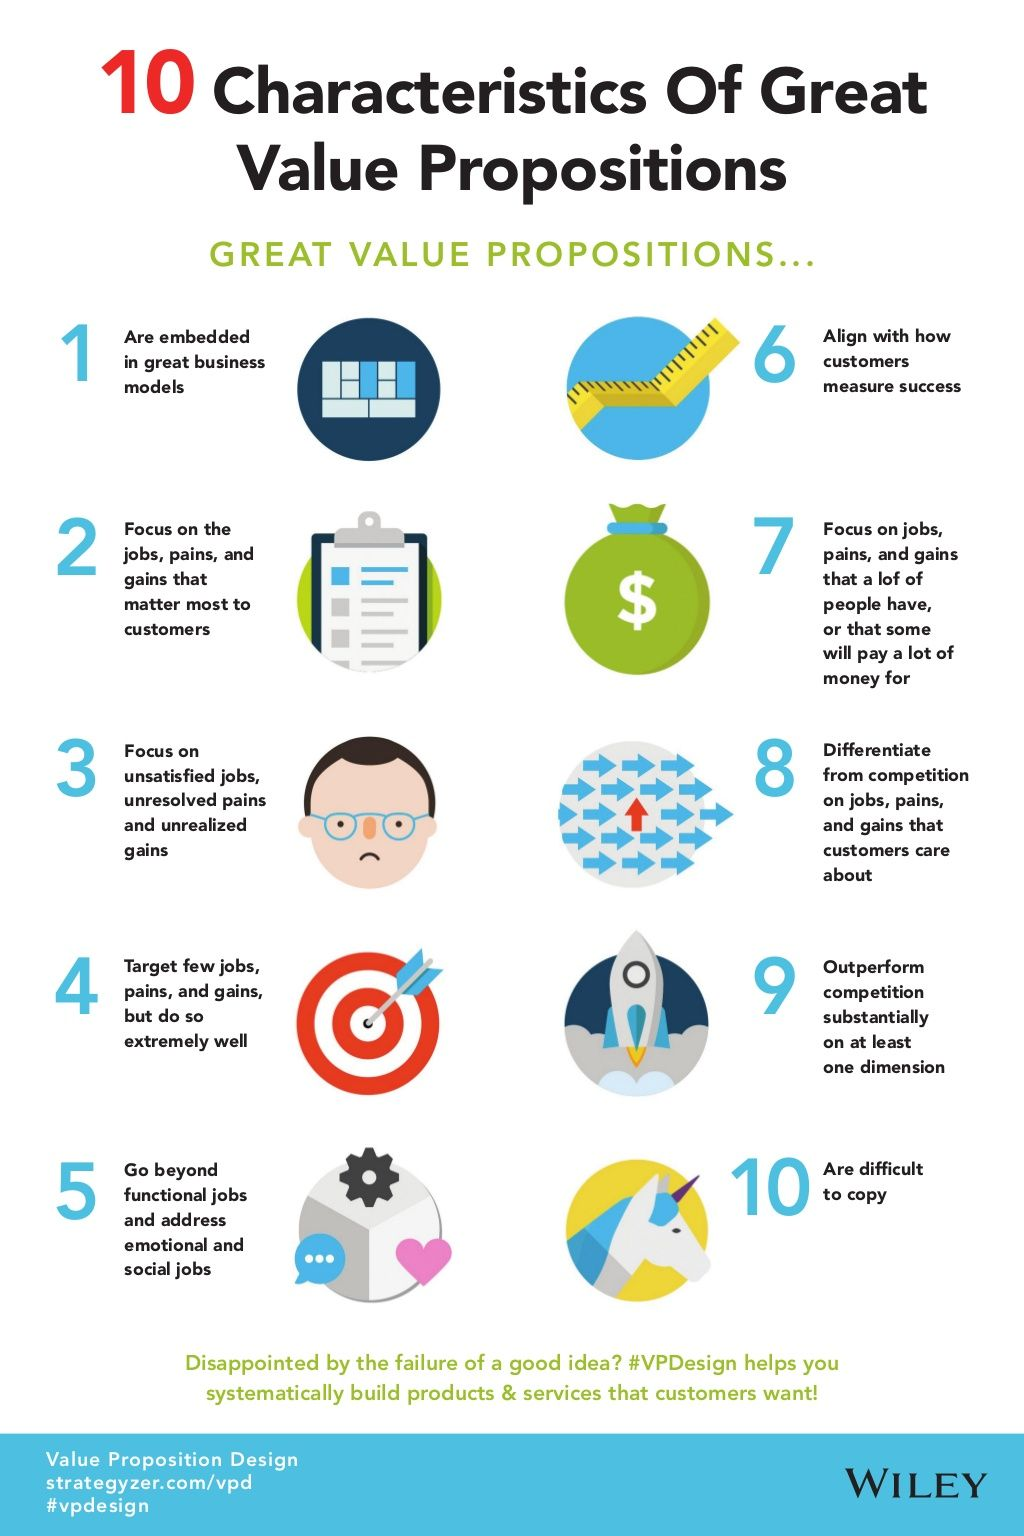 10 Characteristics of Great Value Propositions by Wiley